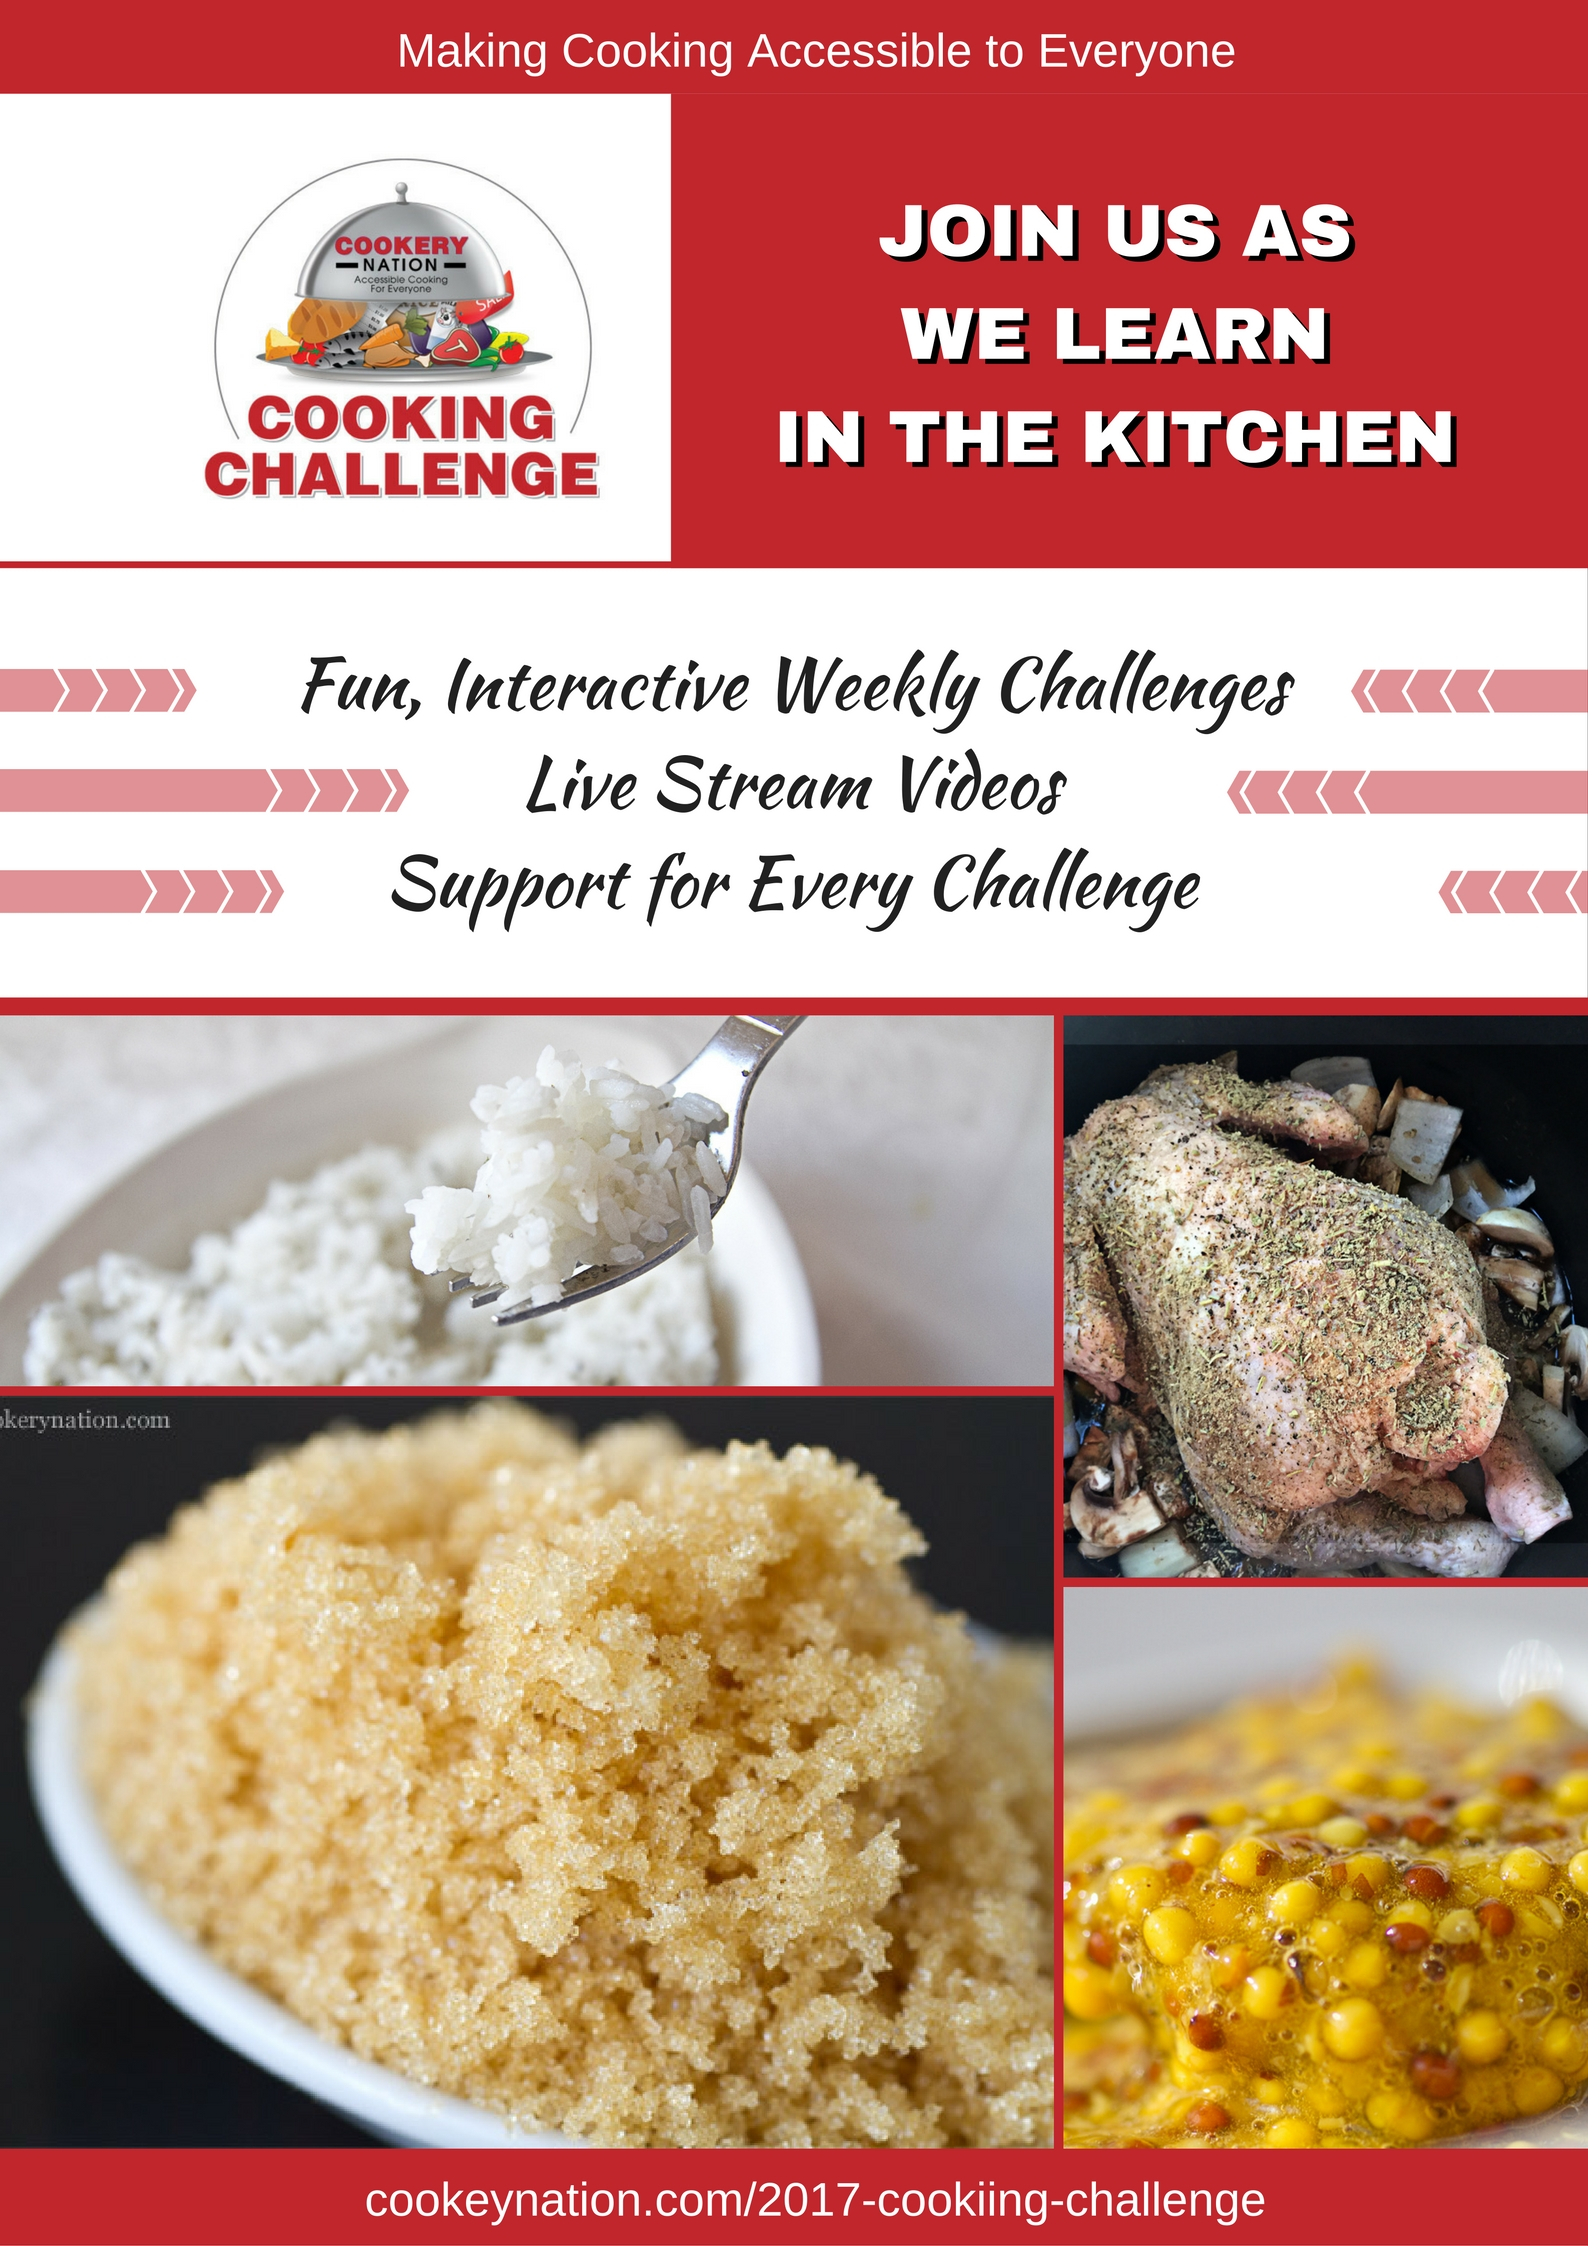 Our 2017 Challenge has begun! Join in whenever you like. We can all improve our skills in the kitchen. Let's make it fun!